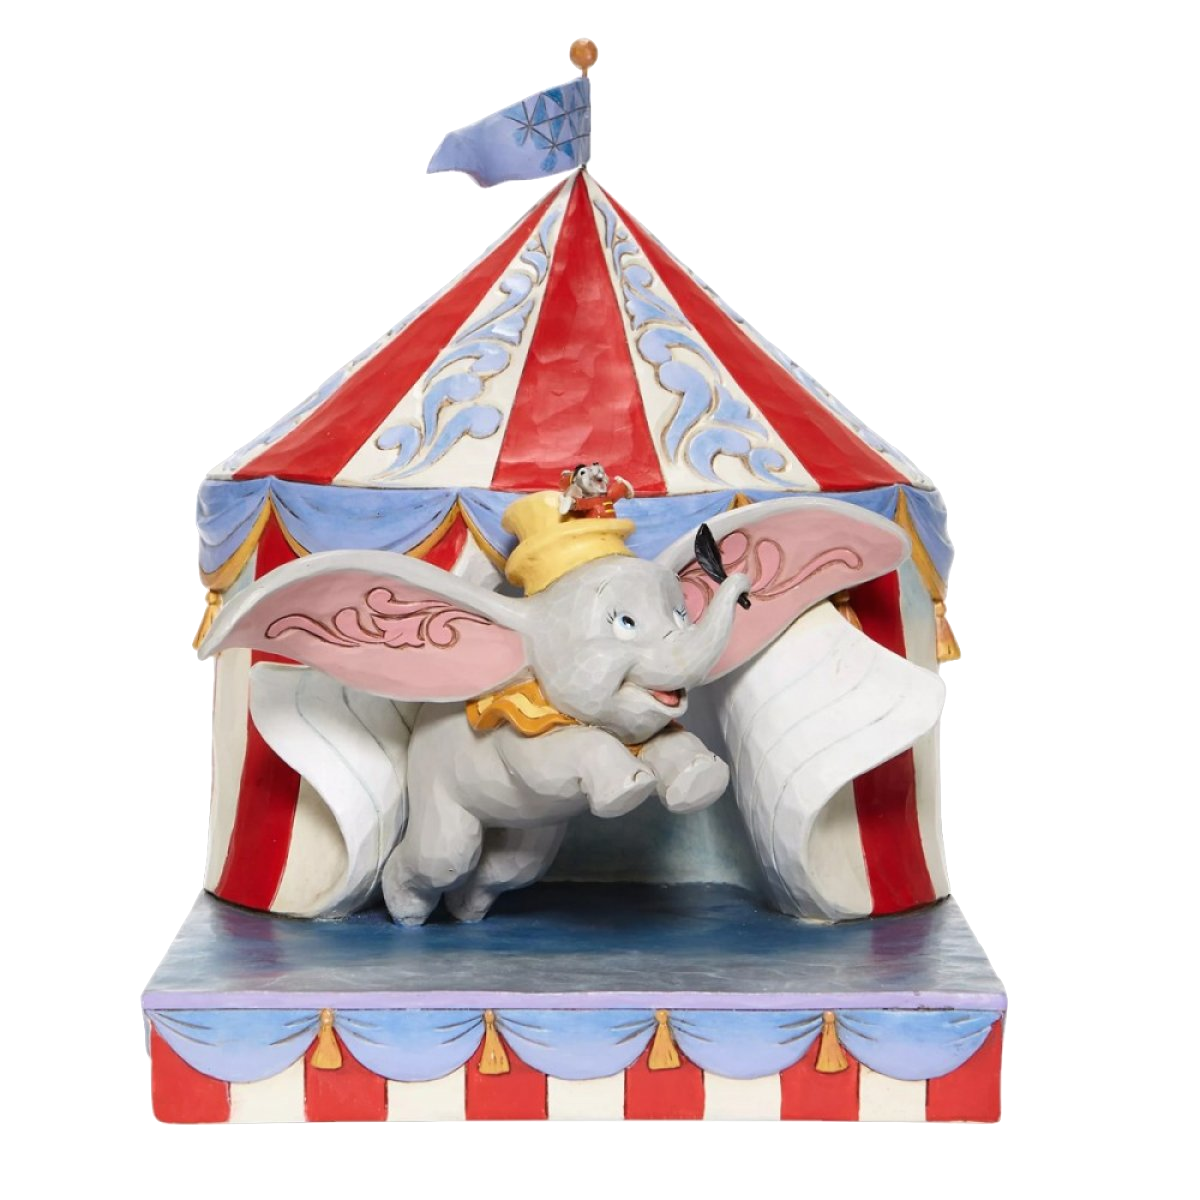 jim-shore-disney-traditions-dumbo-circus-out-of-tent-toyslife